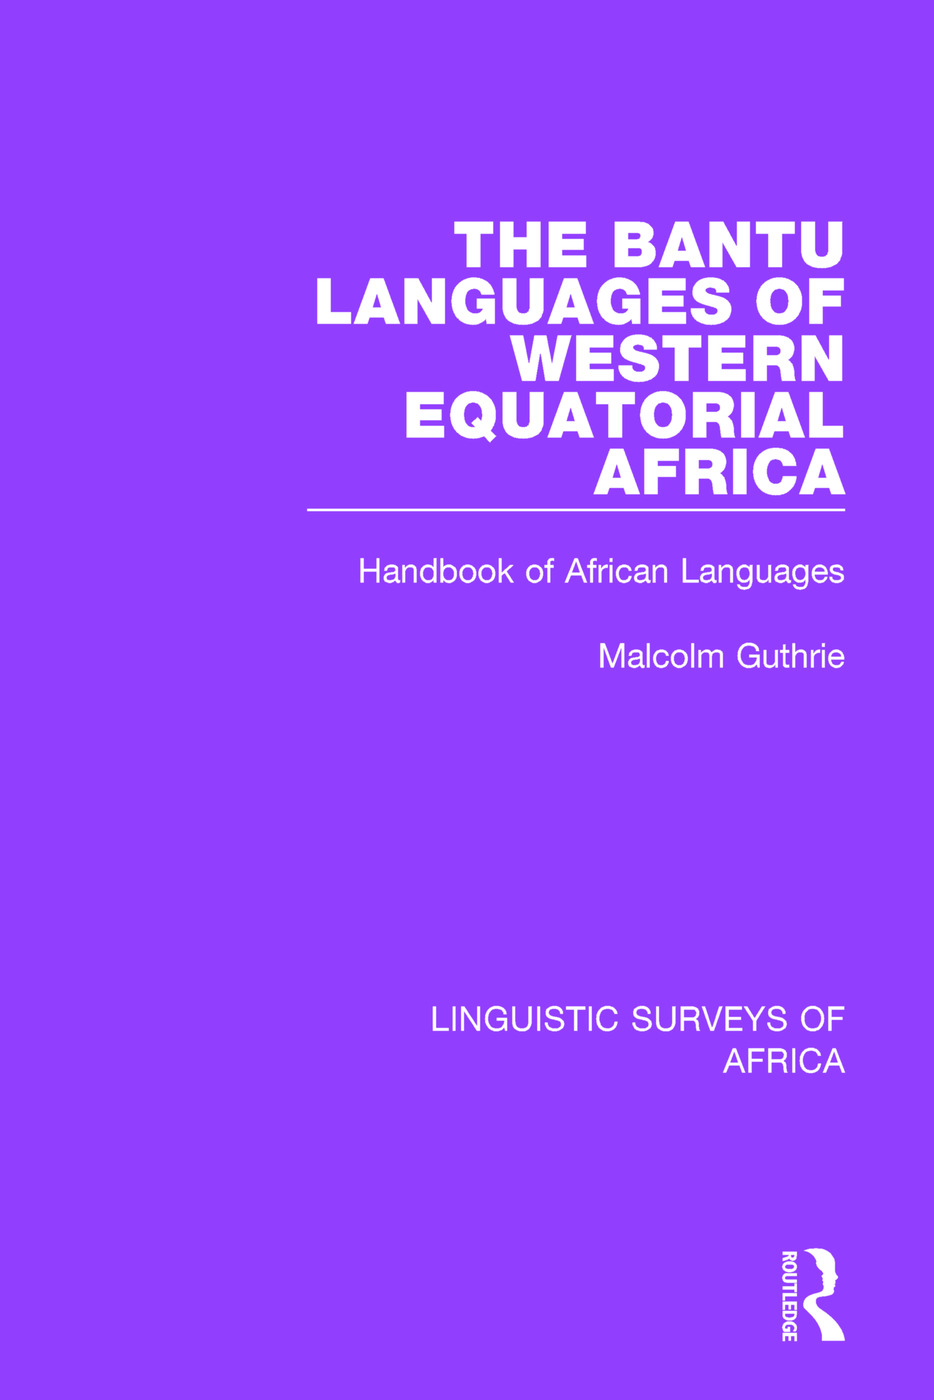 The Bantu Languages of Western Equatorial Africa: Handbook of African Languages book cover